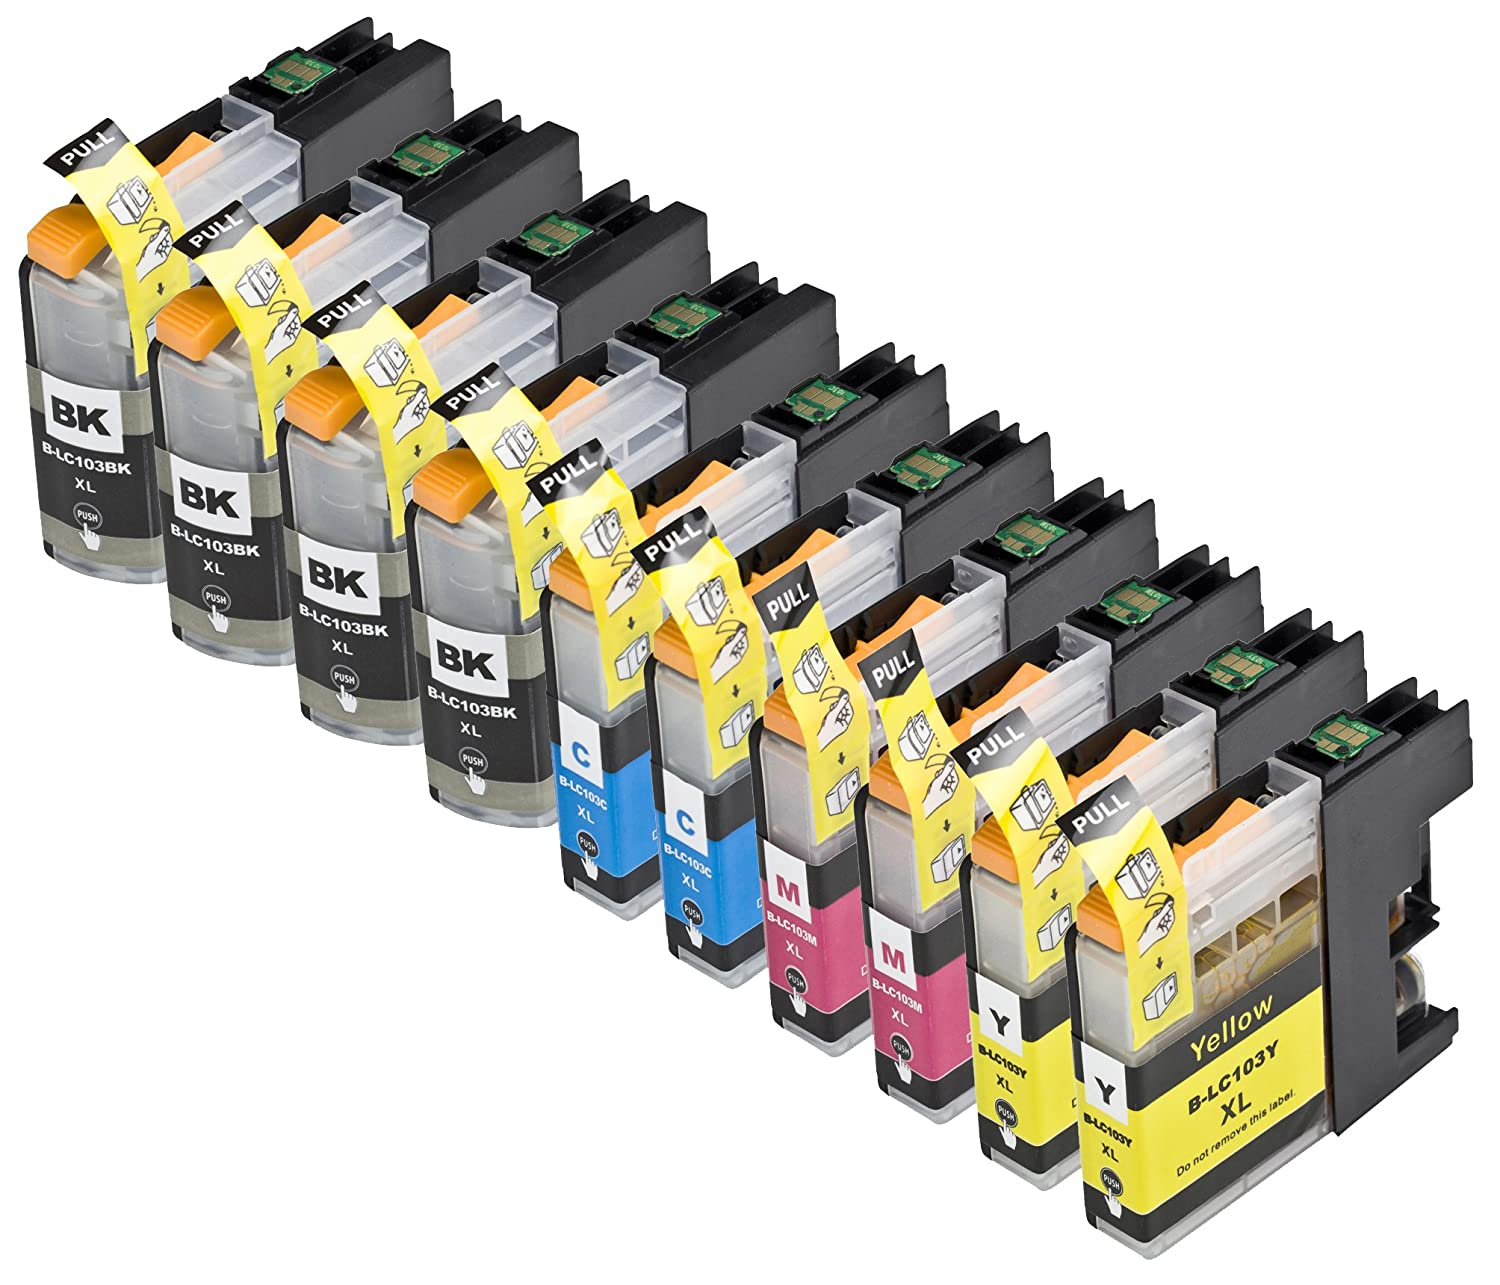 10 Pack Compatible Brother LC101 , LC103 4 Black, 2 Cyan, 2 Magenta, 2 Yellow for use with Brother DCP-J152W, MFC-J245, MFC-J285DW, MFC-J4310DW, MFC-J4410DW, MFC-J450DW, MFC-J4510DW, MFC-J4610DW, MFC-J470DW, MFC-J4710DW, MFC-J475DW, MFC-J650DW, MFC-J6520DW